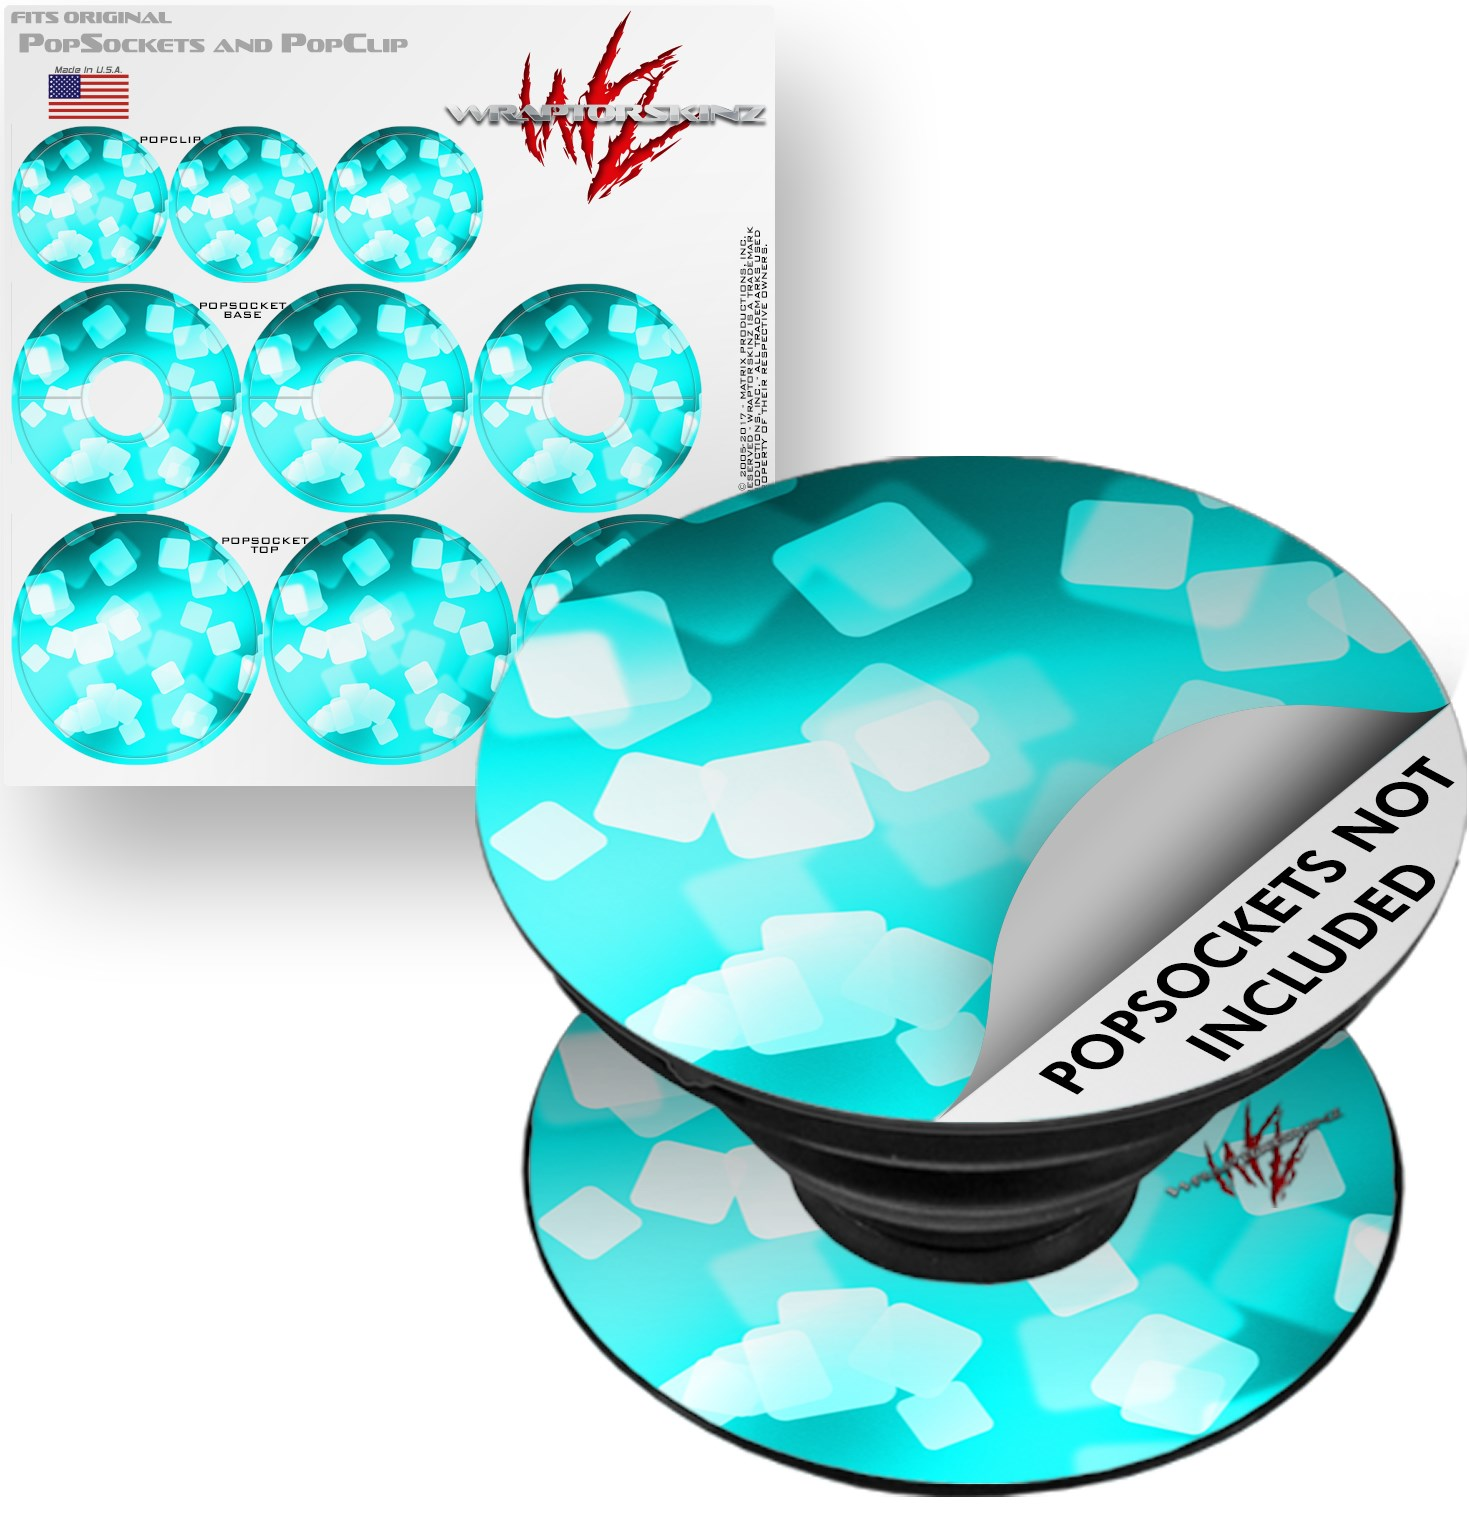 Decal Style Vinyl Skin Wrap 3 Pack for PopSockets Bokeh Squared Neon Teal (POPSOCKET NOT INCLUDED) by WraptorSkinz